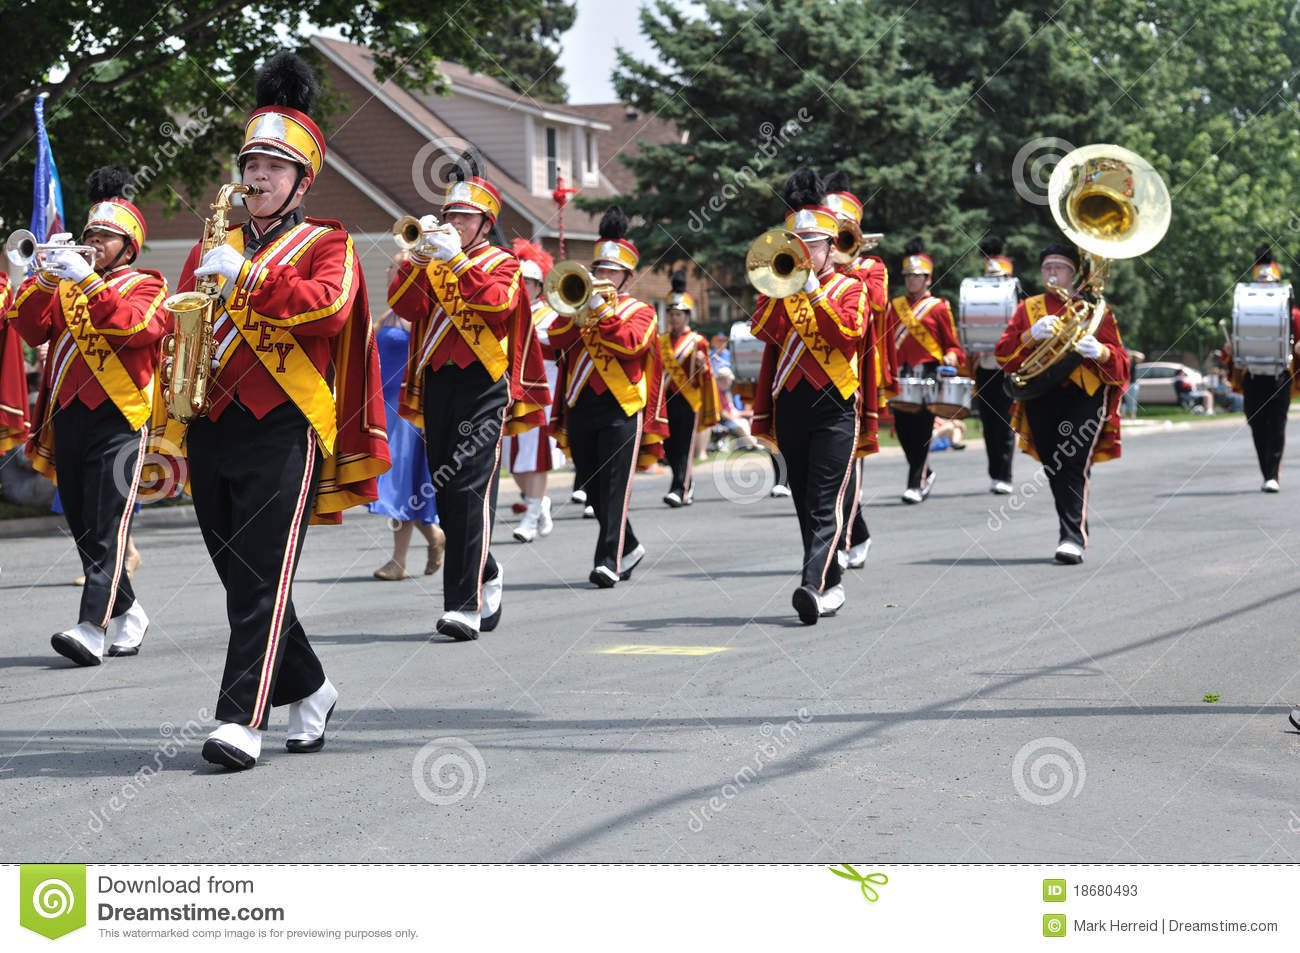 High School Marching Band Clipart High School Marching Band